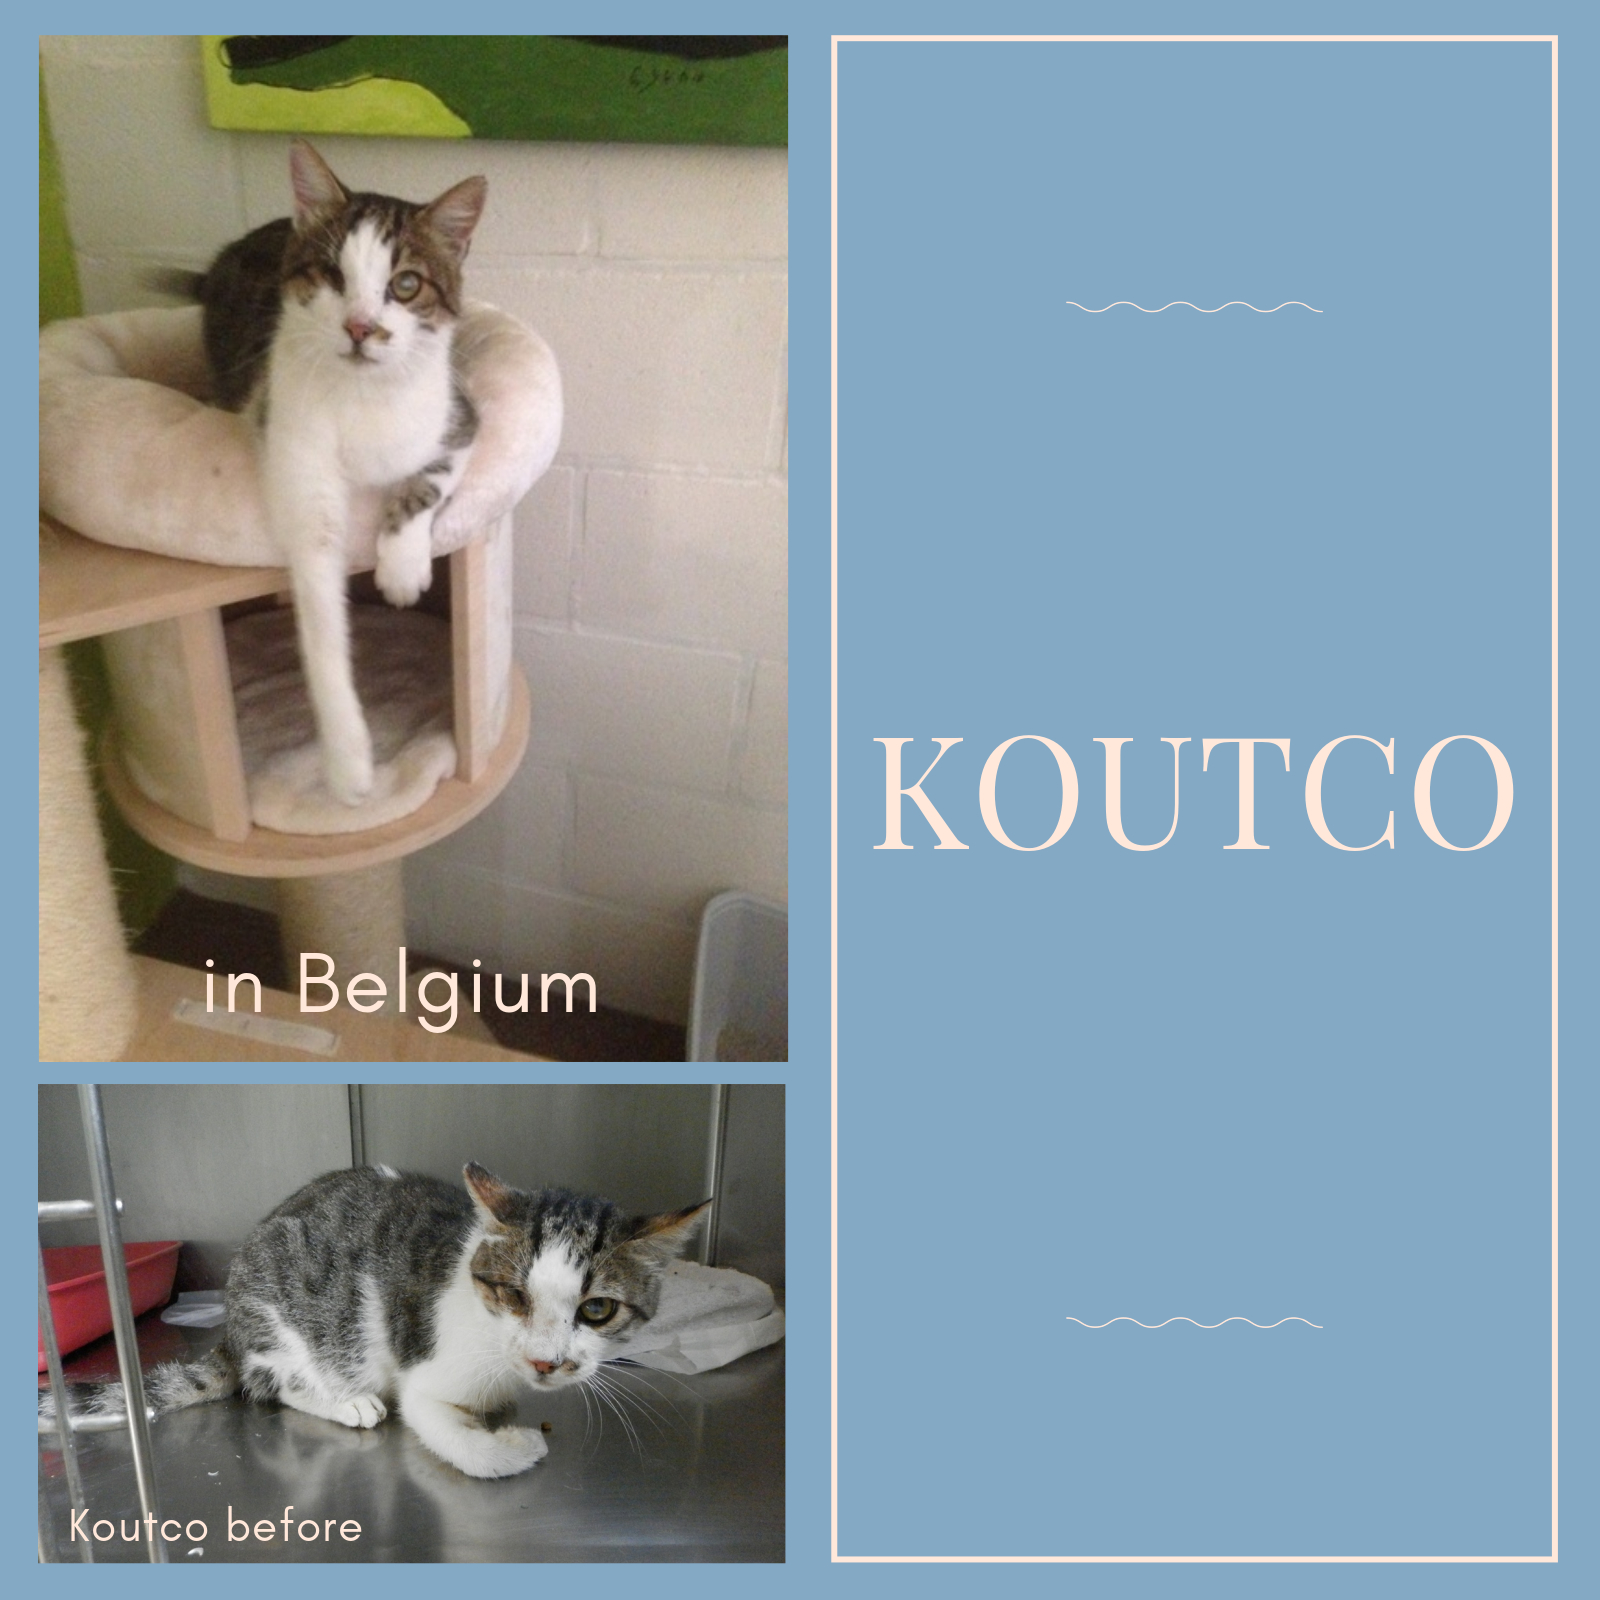 koutco-collage.jpg